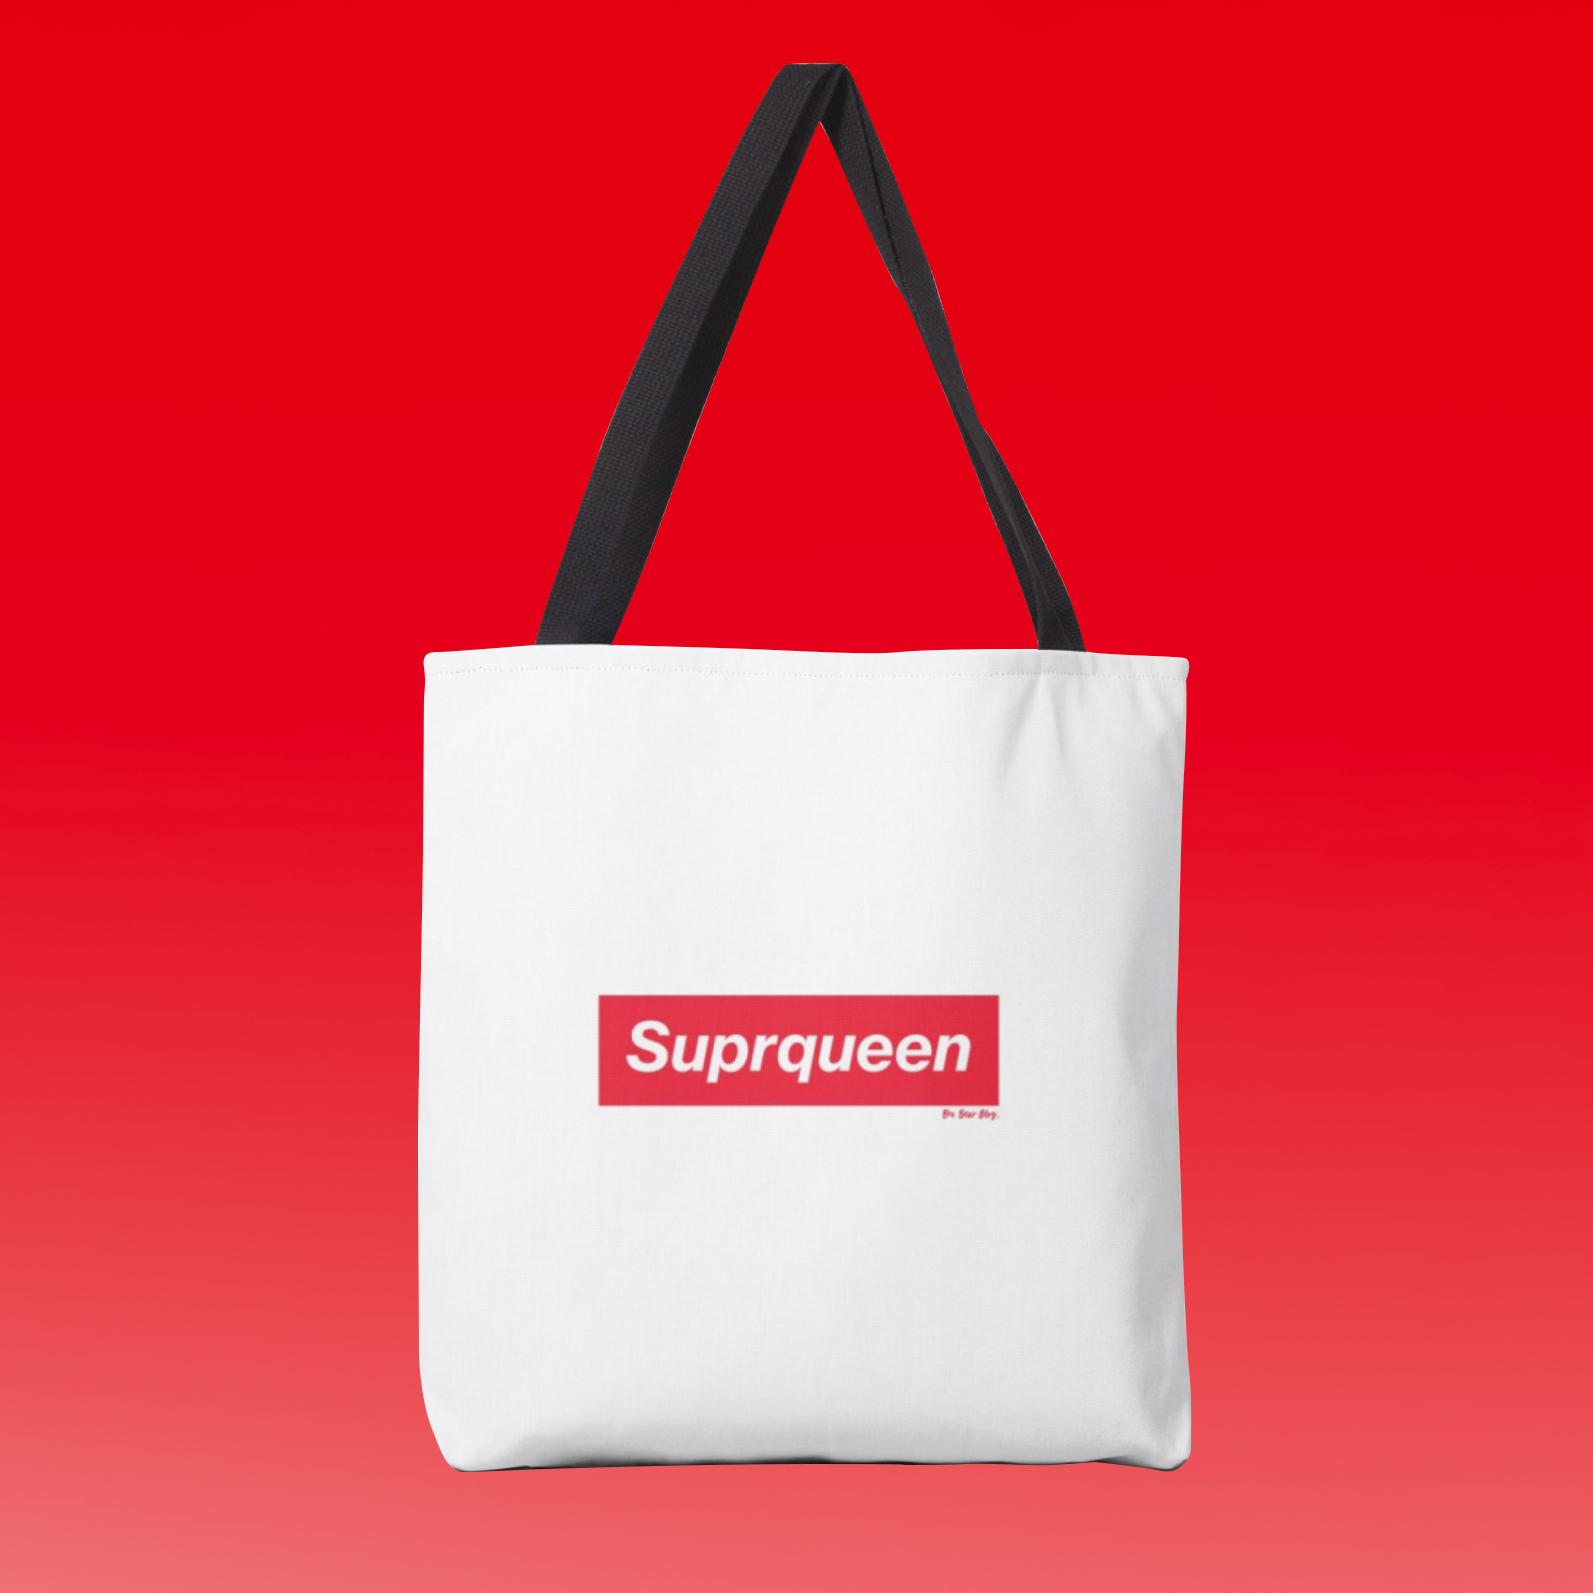 Suprqueen tote - By Bro. Bear Atelier